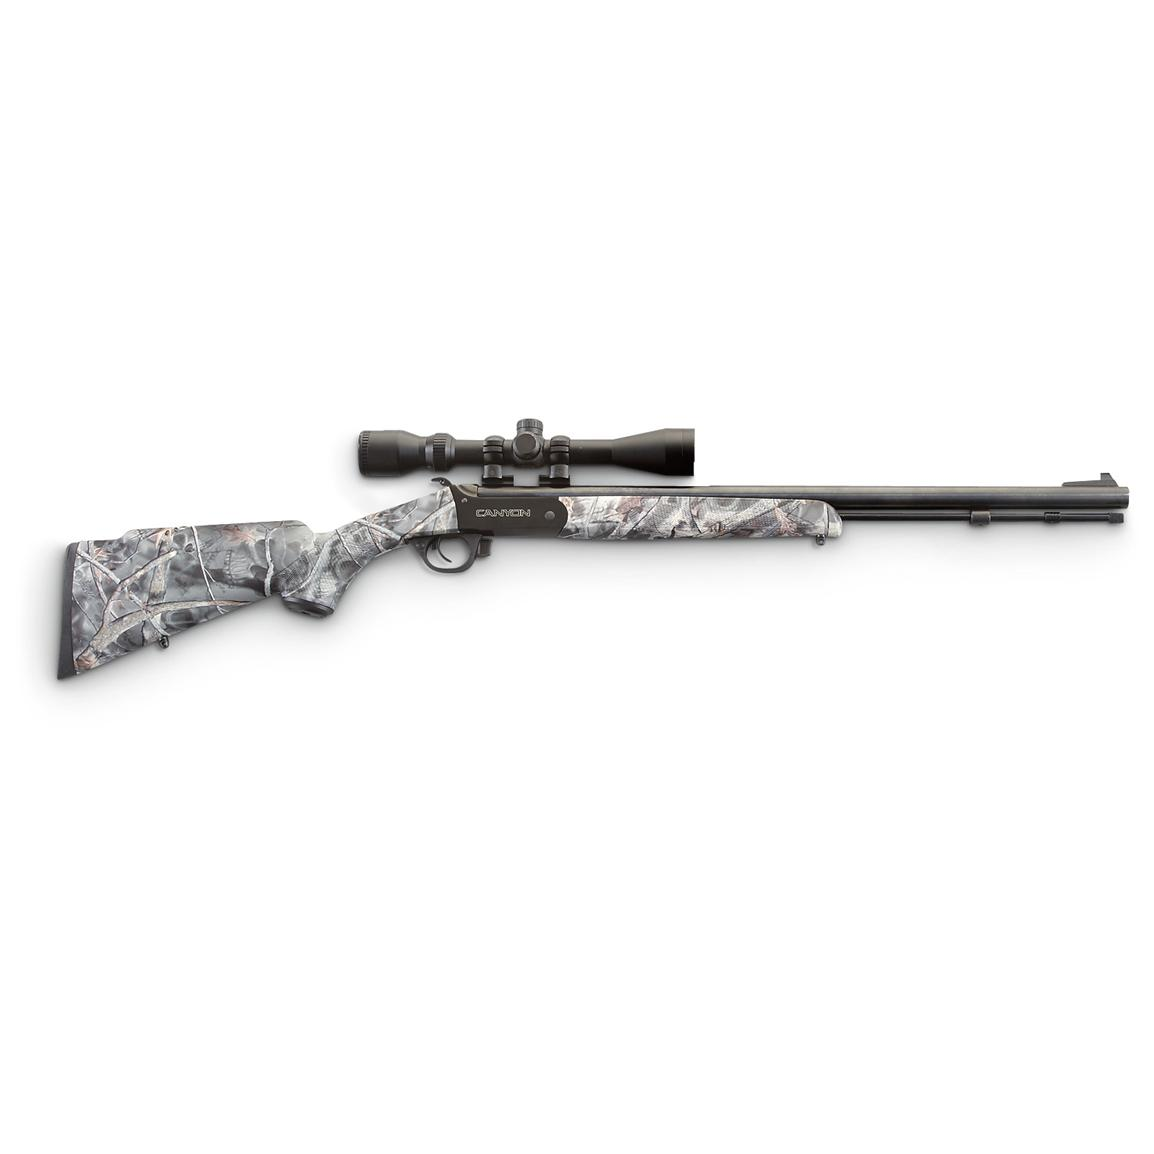 Traditions™ Canyon Reaper Black Powder Rifle, Blued / Reaper Camo